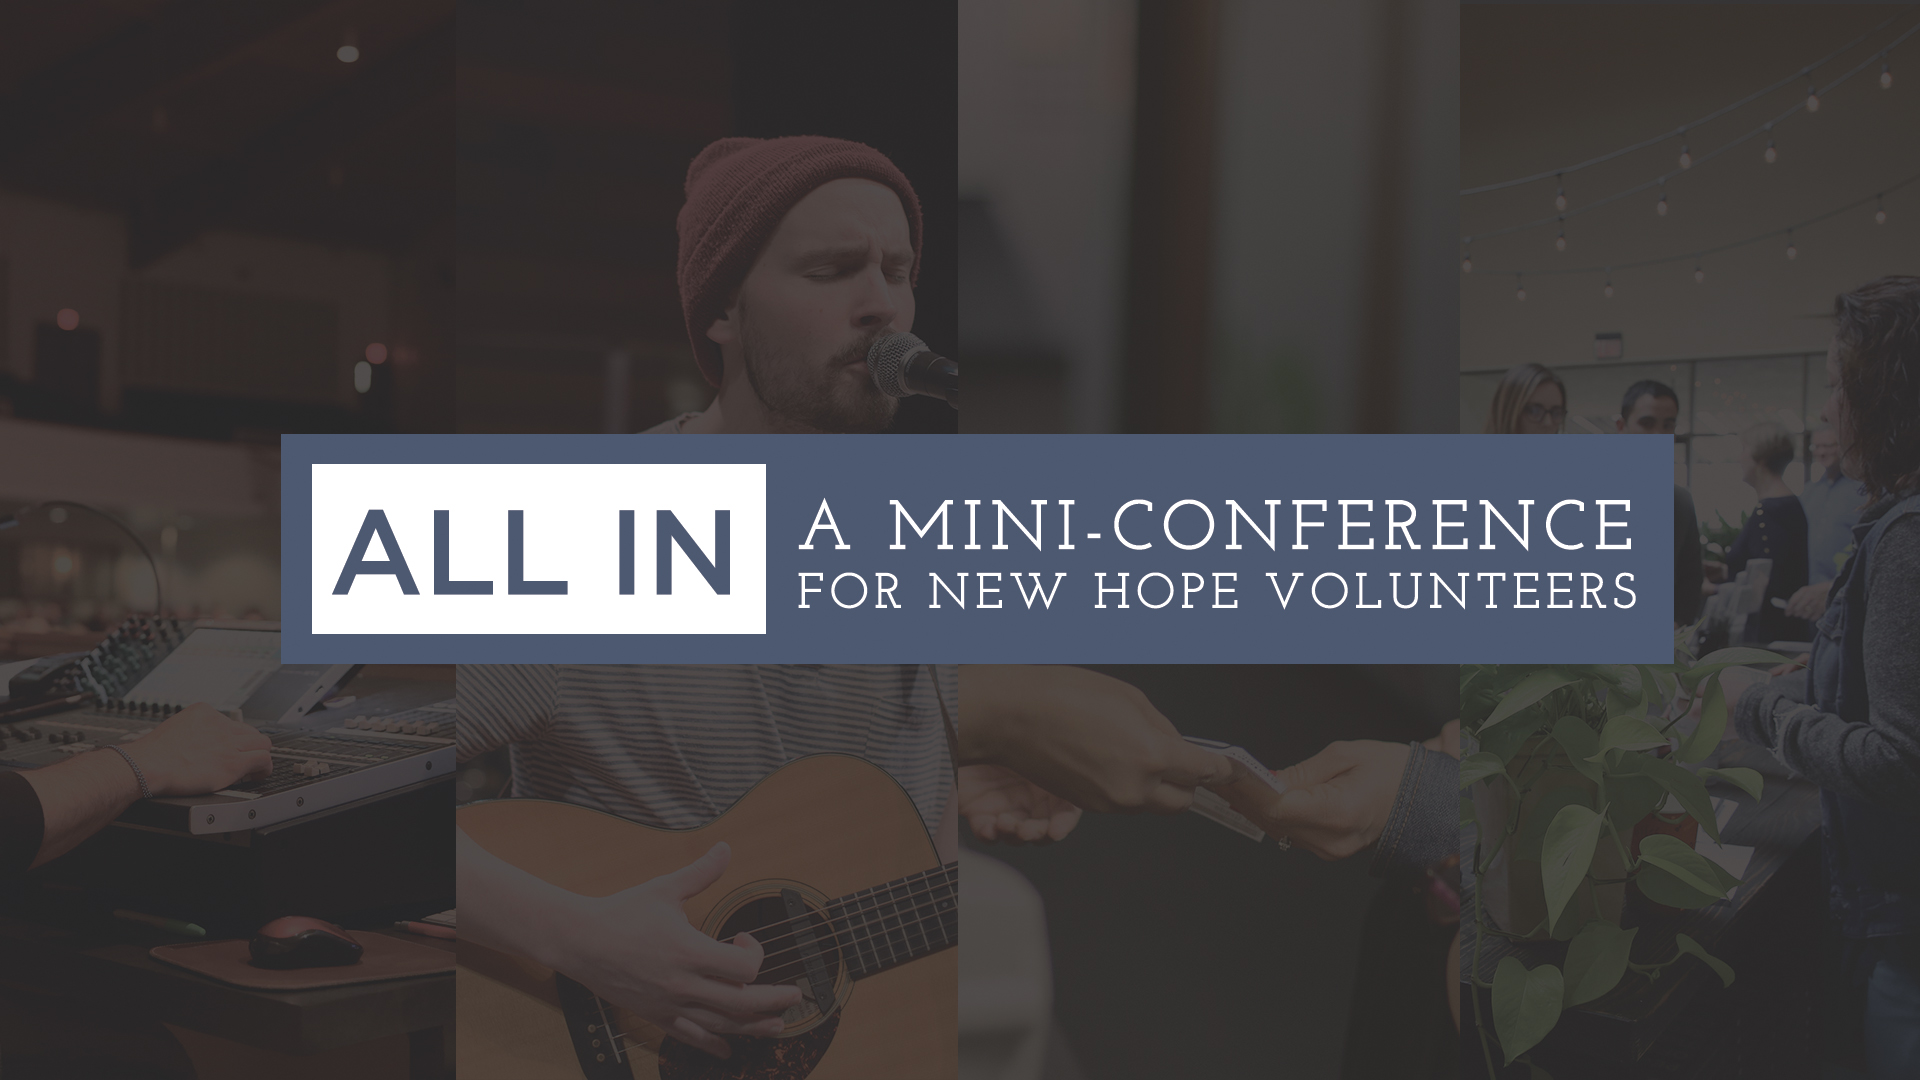 All In: A Mini-Conference for New Hope Volunteers